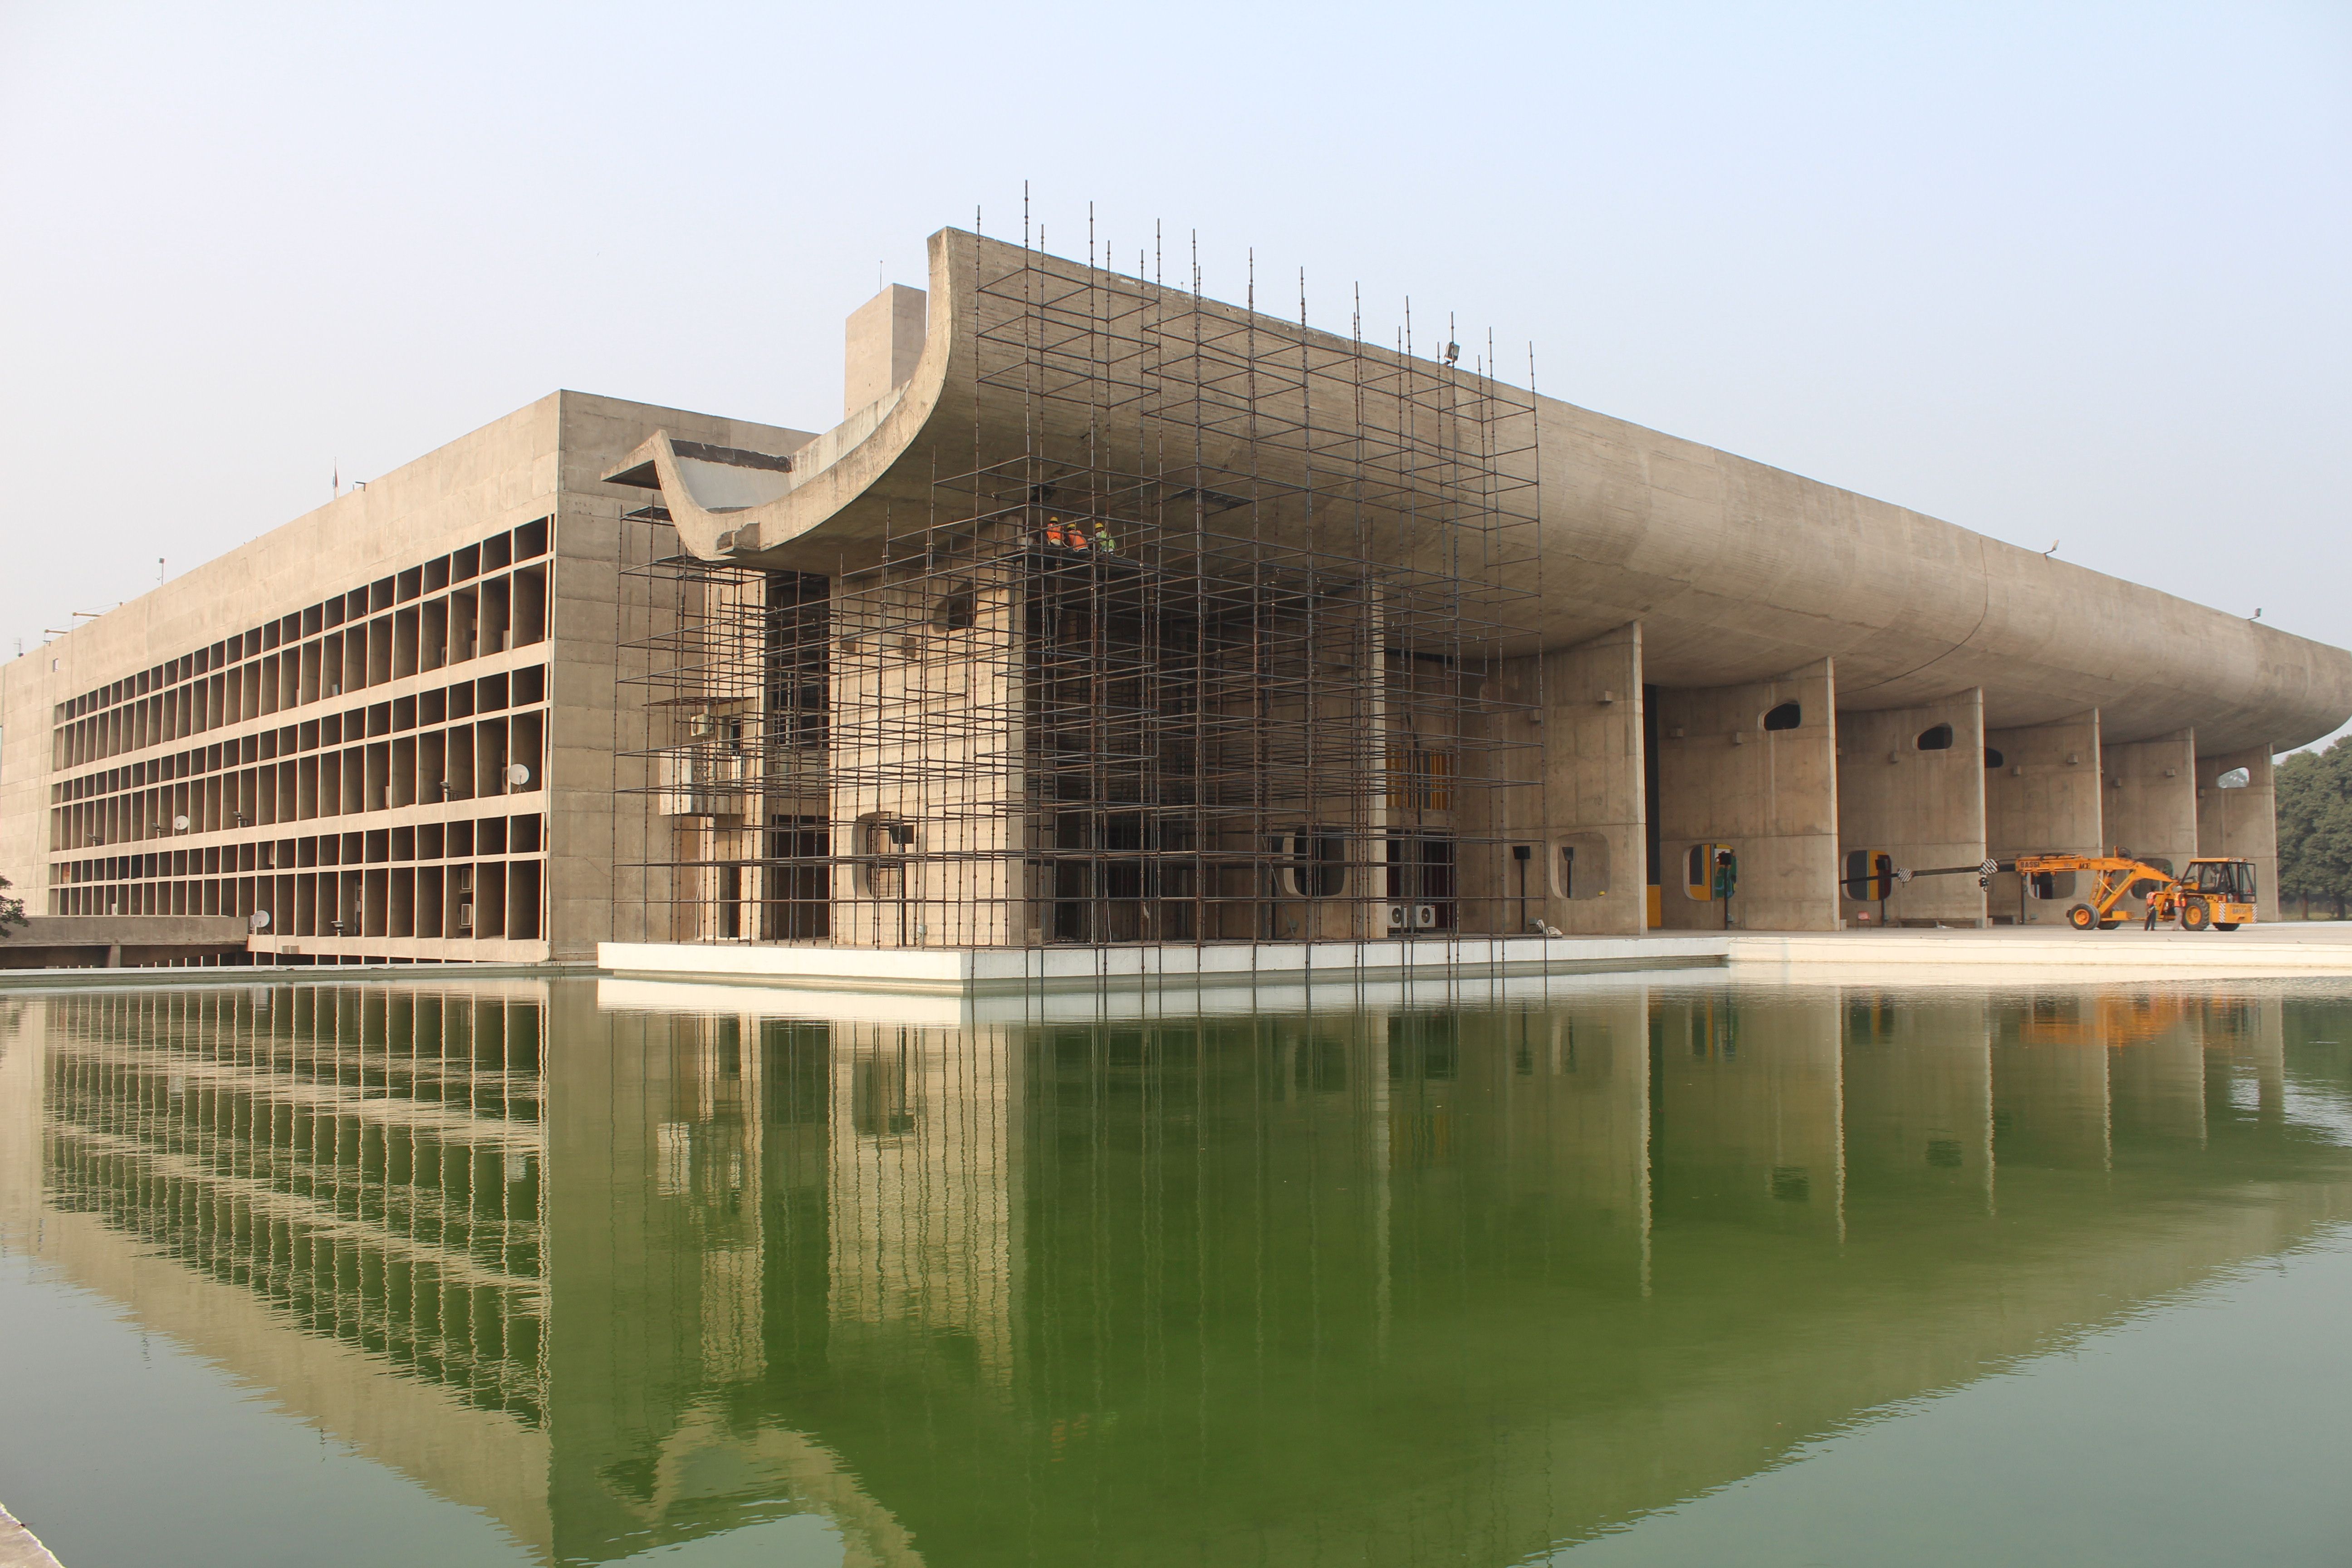 Chandigarh's Capitol Complex consisting of the High Court of Punjab and Haryana, Secretariat and Legislative Assemblies is surrounded by monuments which students of architecture now recognise the world over as among the first nude buildings. The exposed concrete buildings may not be to everyone's taste. But the area north of the Capitol Complex was proposed as a no-construction zone and an open buffer was envisaged upto the Shivalik Hills. Now they are the focus of Supreme Court case, which will decide whether realty developer Tata may develop its 36-storey tower complex, Camelot, en plein vue of the UNESCO-protected complex. https://www.hindustantimes.com/punjab/tata-camelot-housing-project-delhi-hc-order-a-wake-up-call-for-chandigarh-authorities/story-Yyy3yz02B29zjDxHh7CFKJ.html